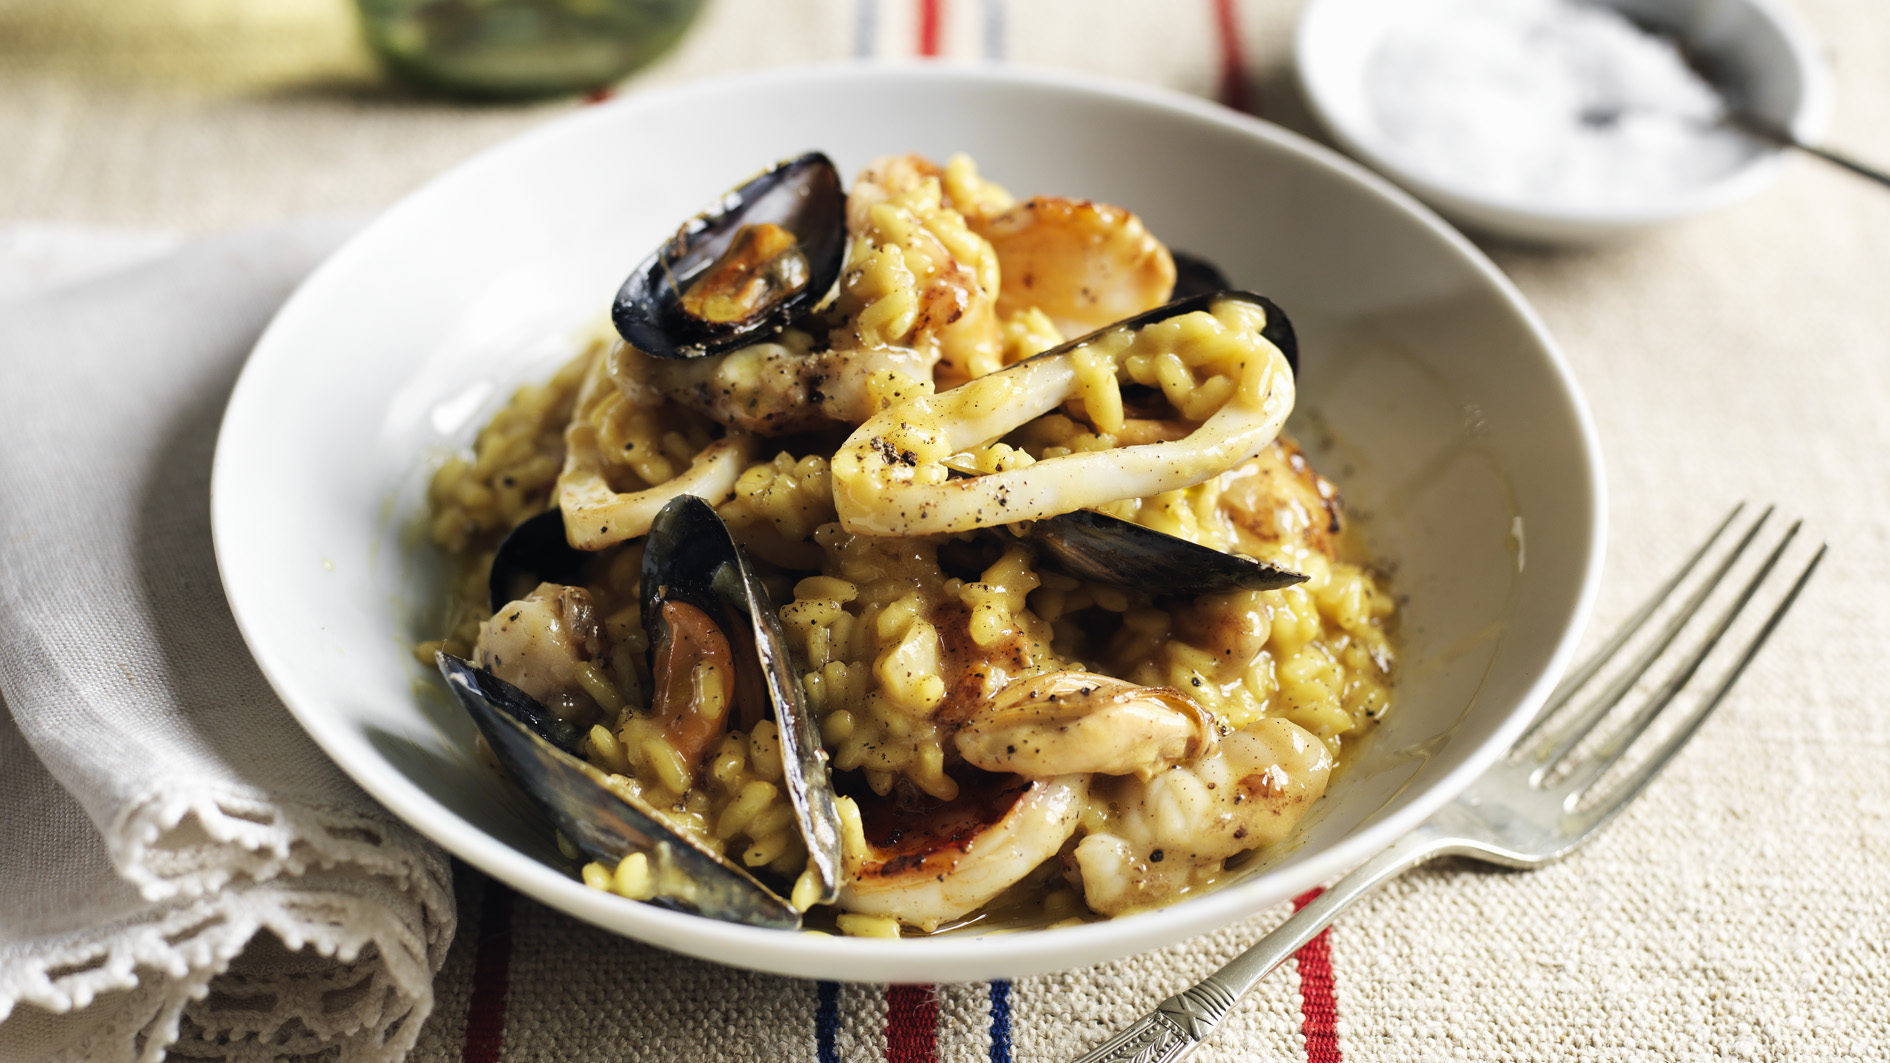 Seafood risotto recipe bbc food forumfinder Gallery